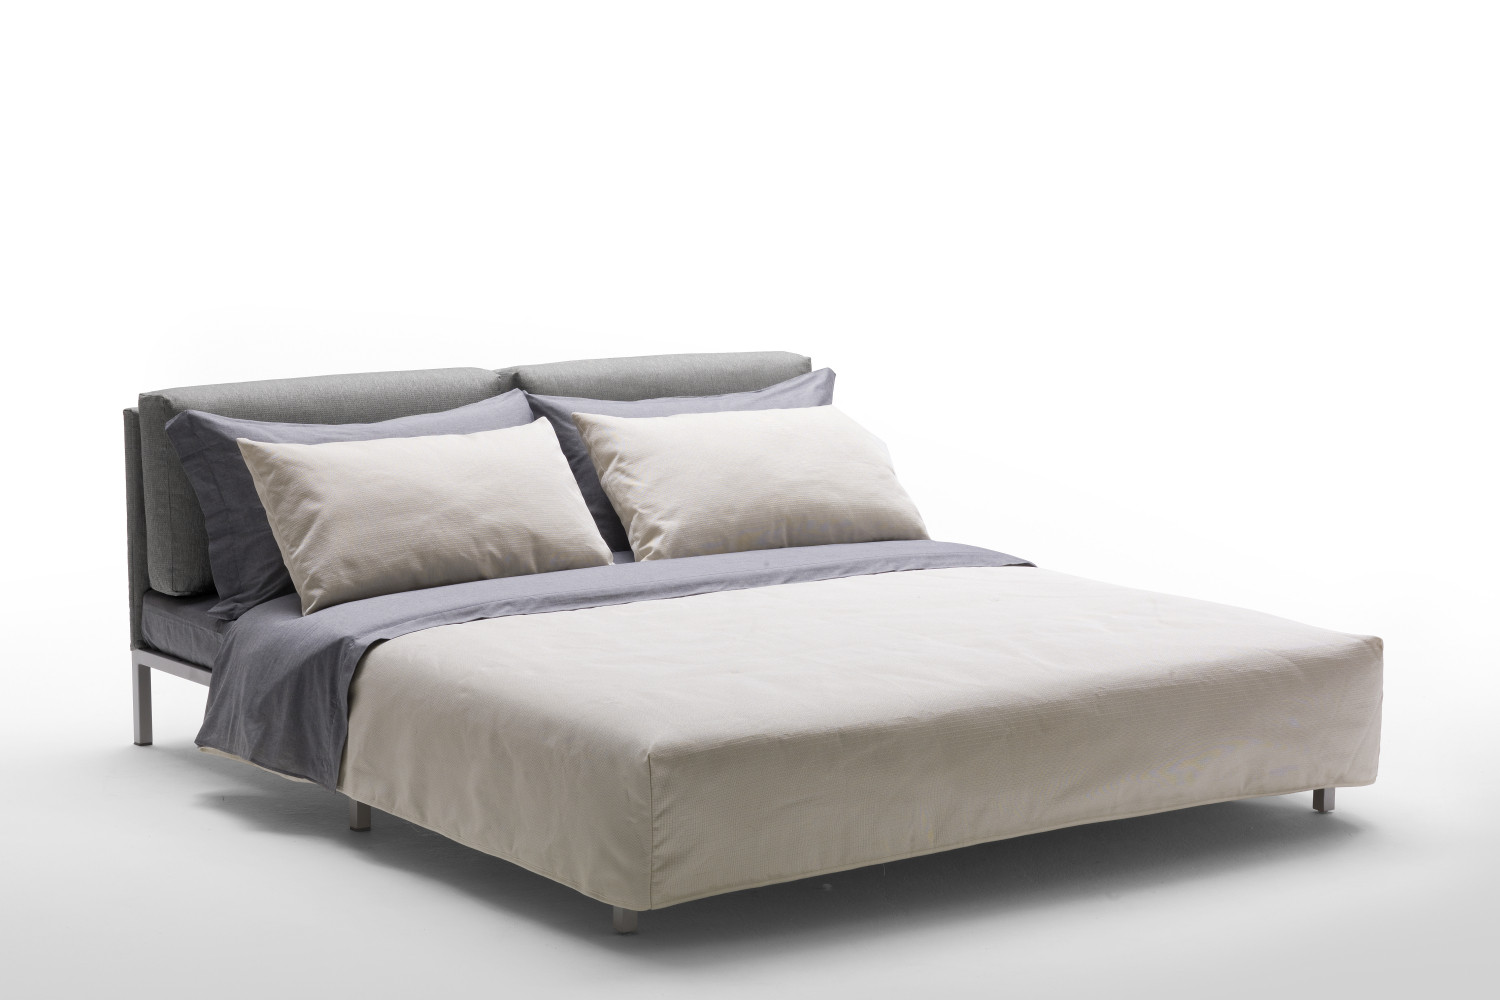 Willy sofa bed with slide out base for Divano letto 150